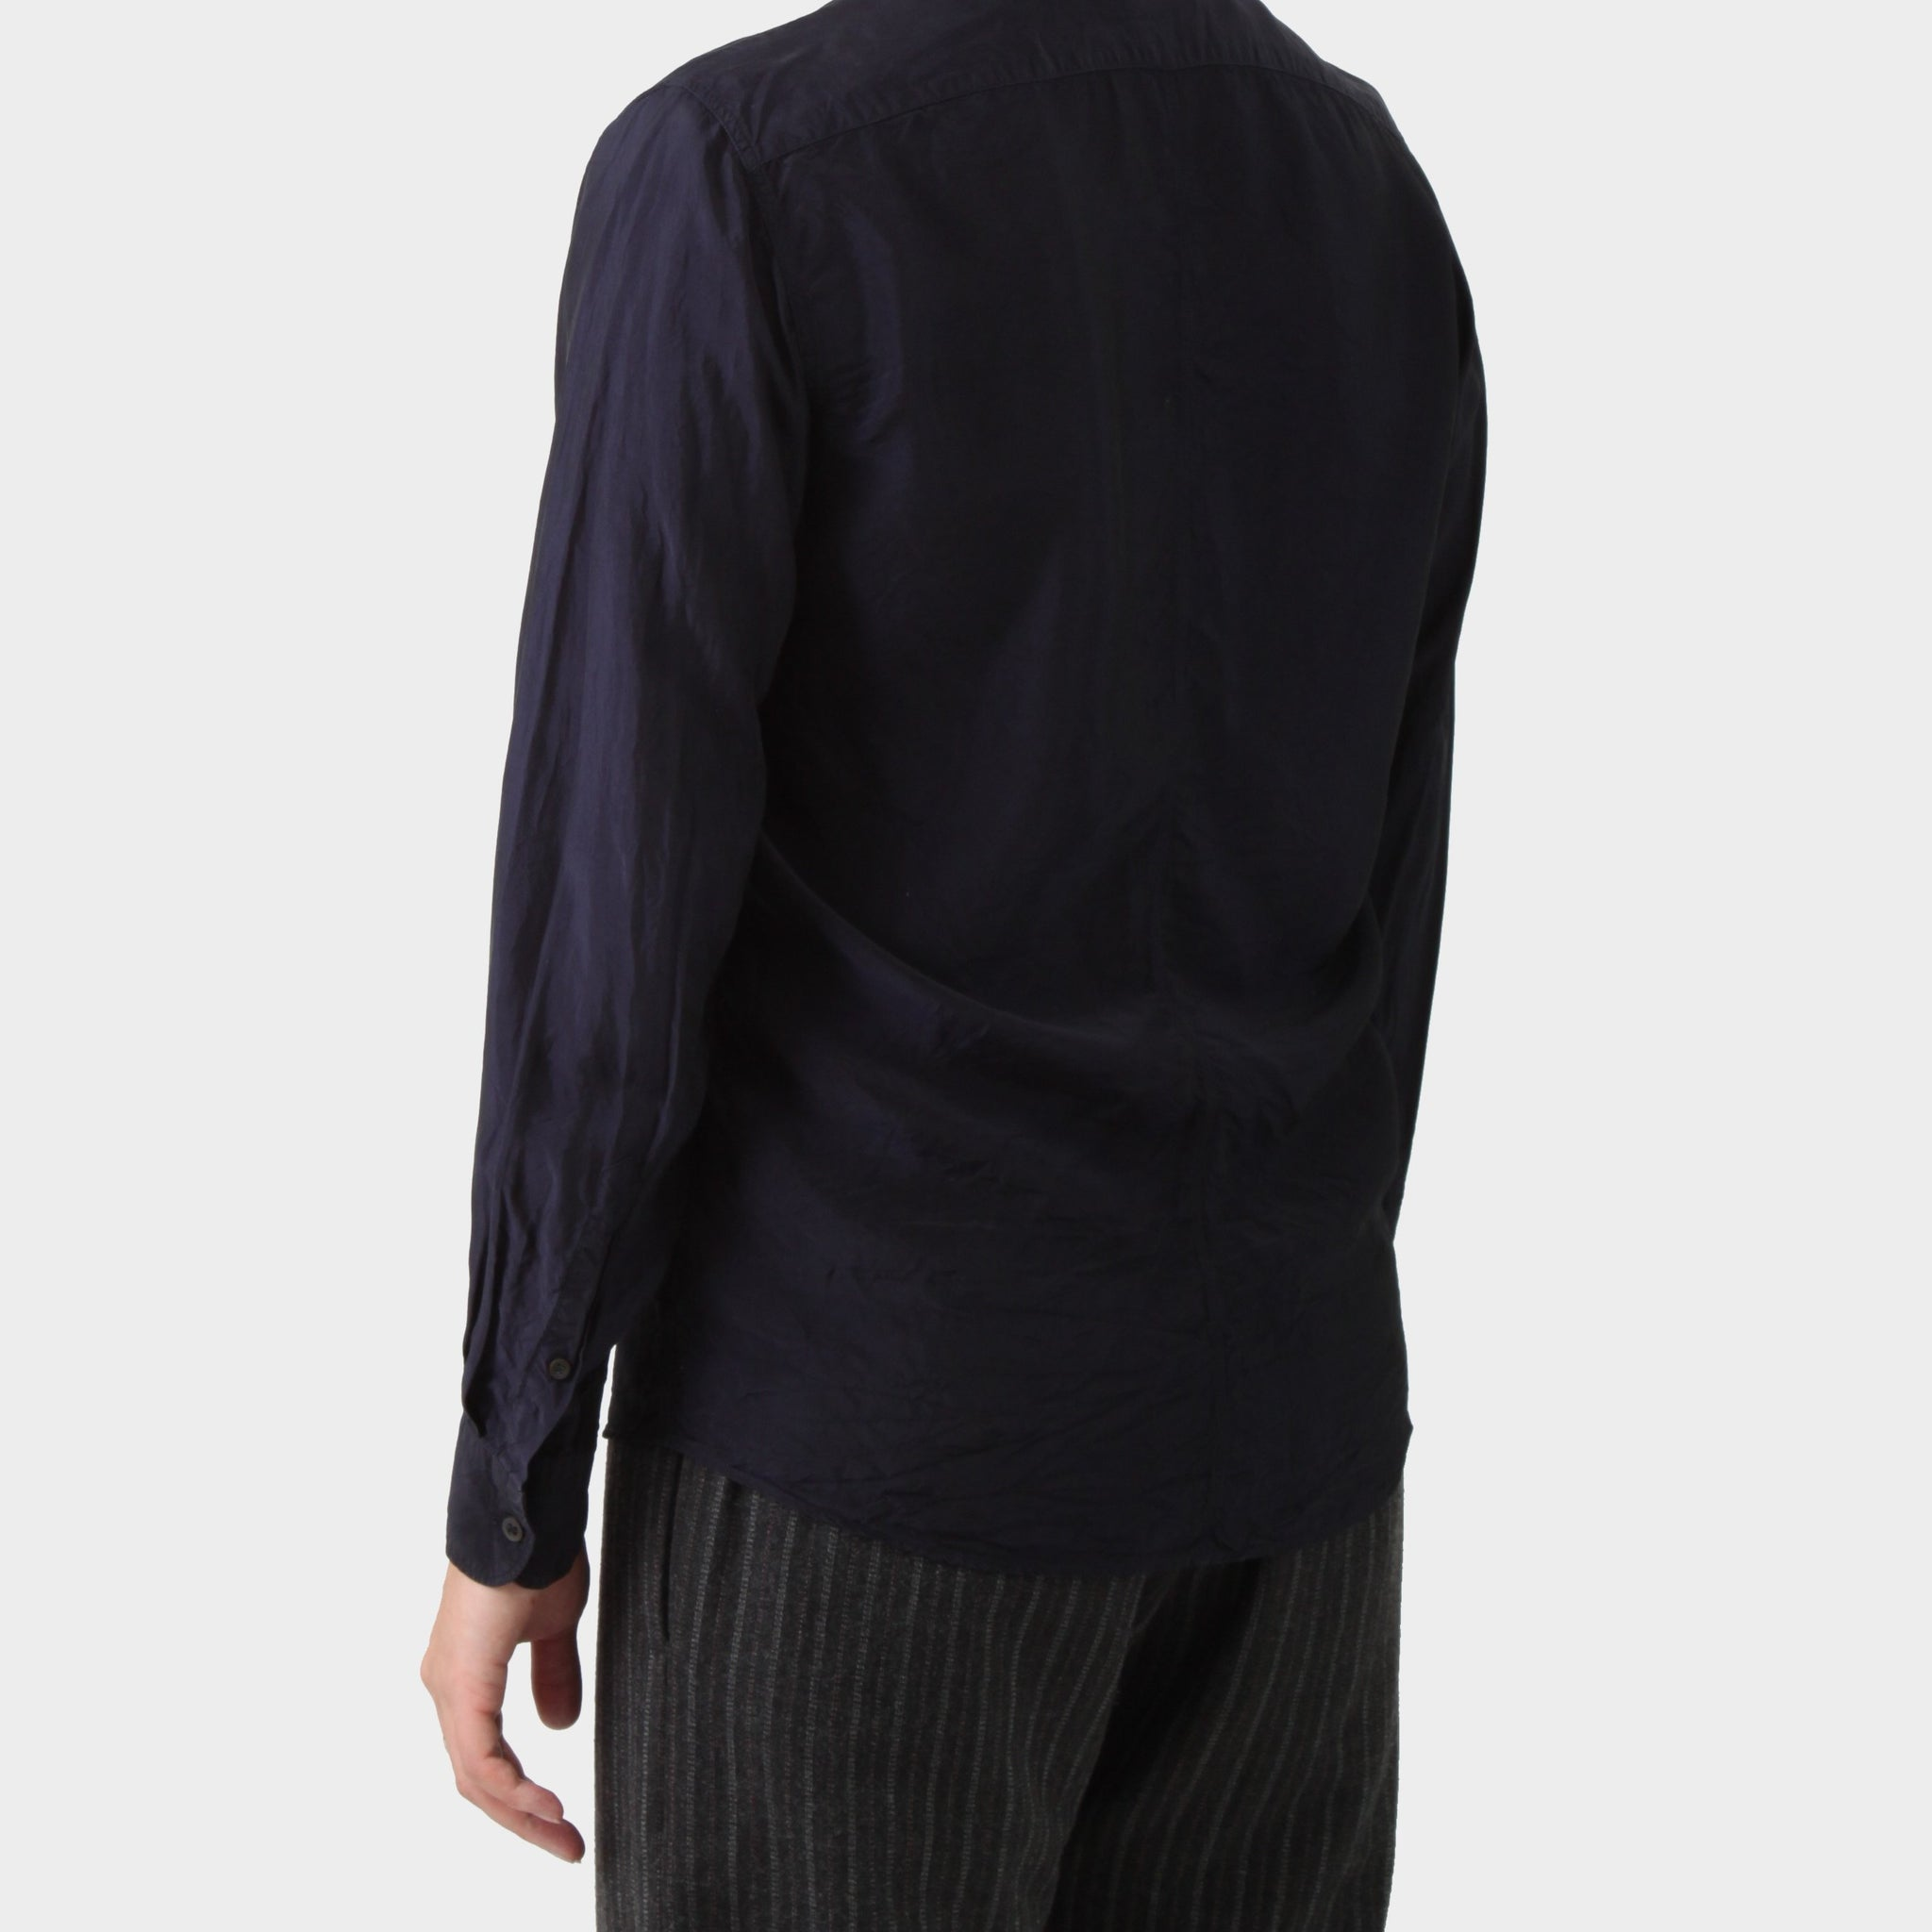 Dries van Noten Navy Cupro Shirt